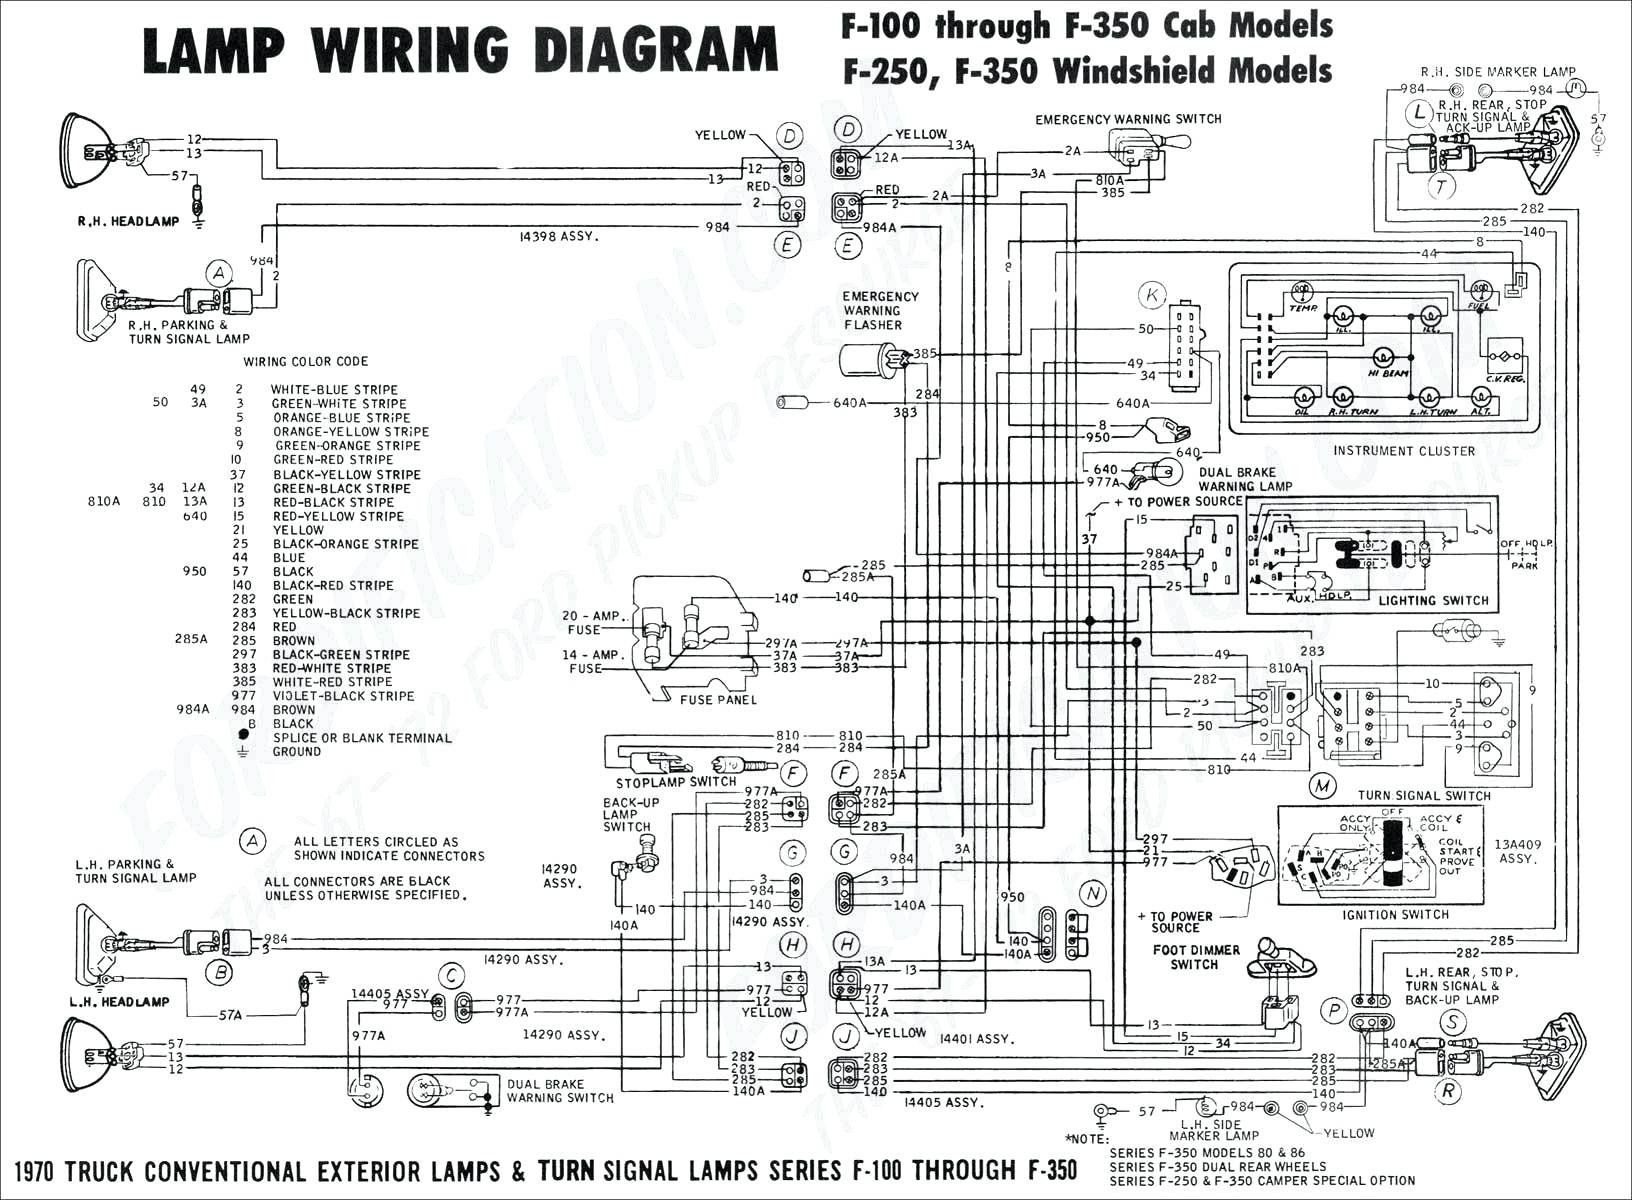 2005 F250 Wiring Diagram 2001 Bmw 325i Fuse Box Location For Wiring Diagram Schematics